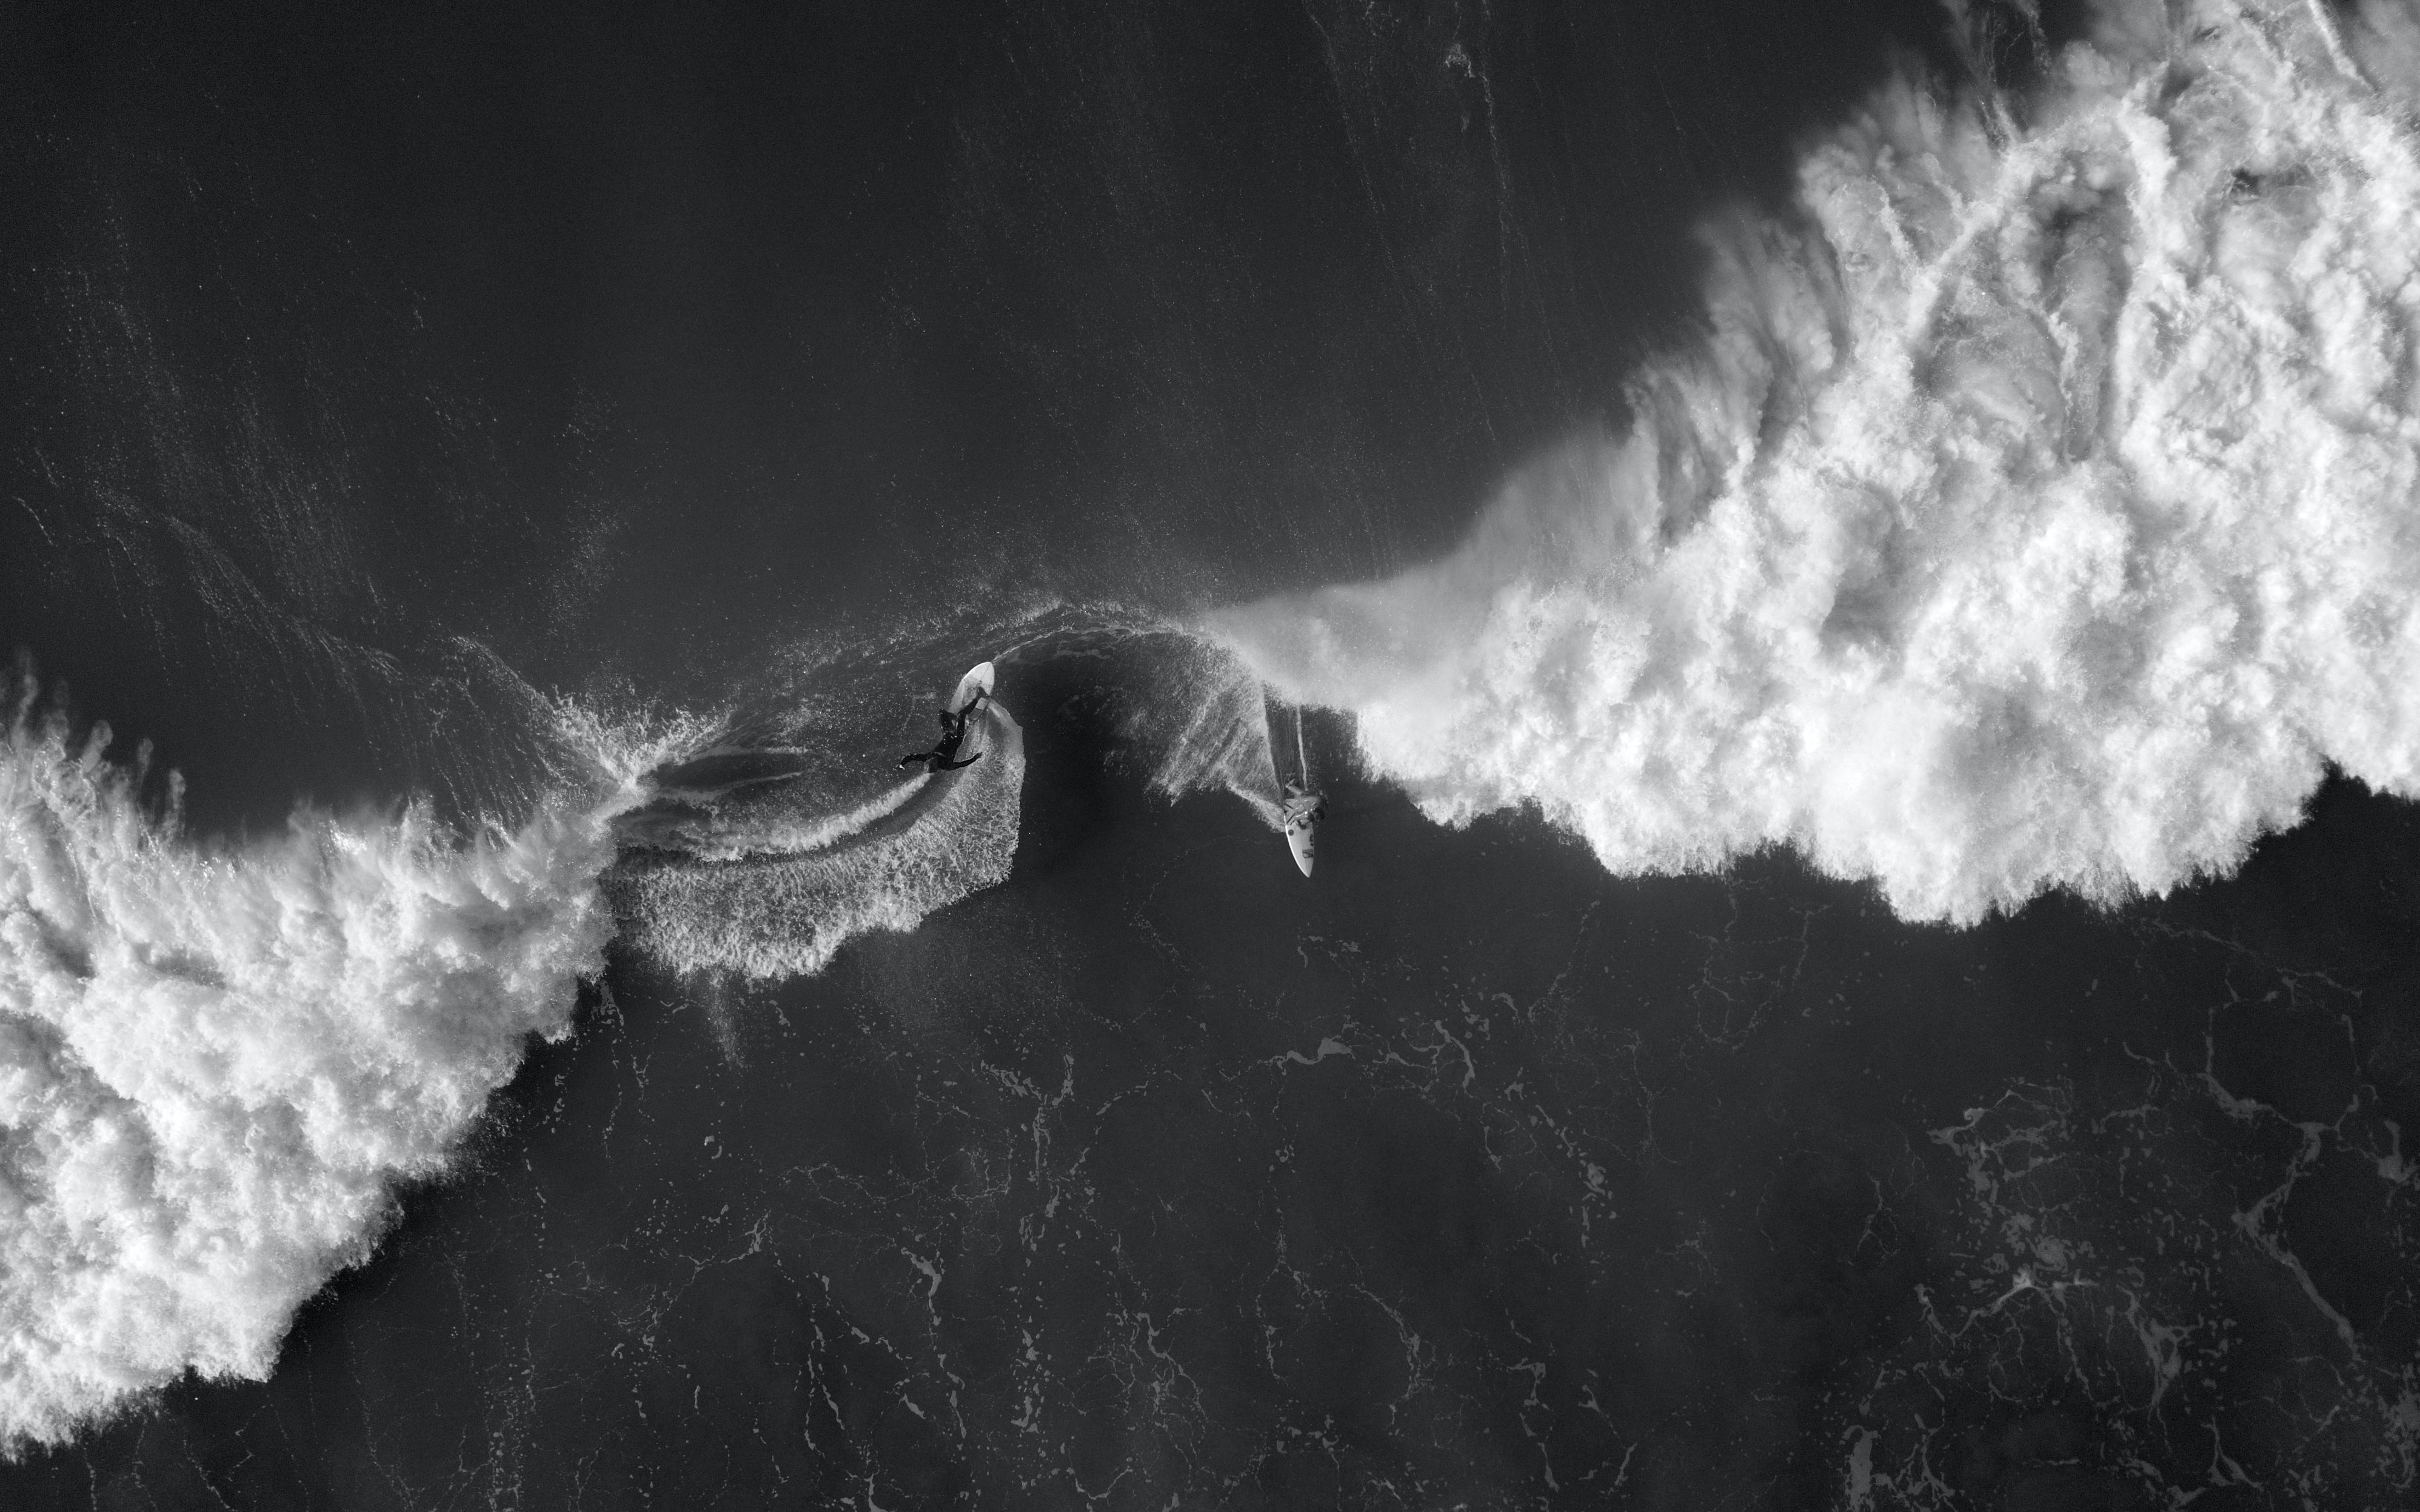 A black and white overhead drone shot of surfers riding foaming waves at Gisborne, New Zealand